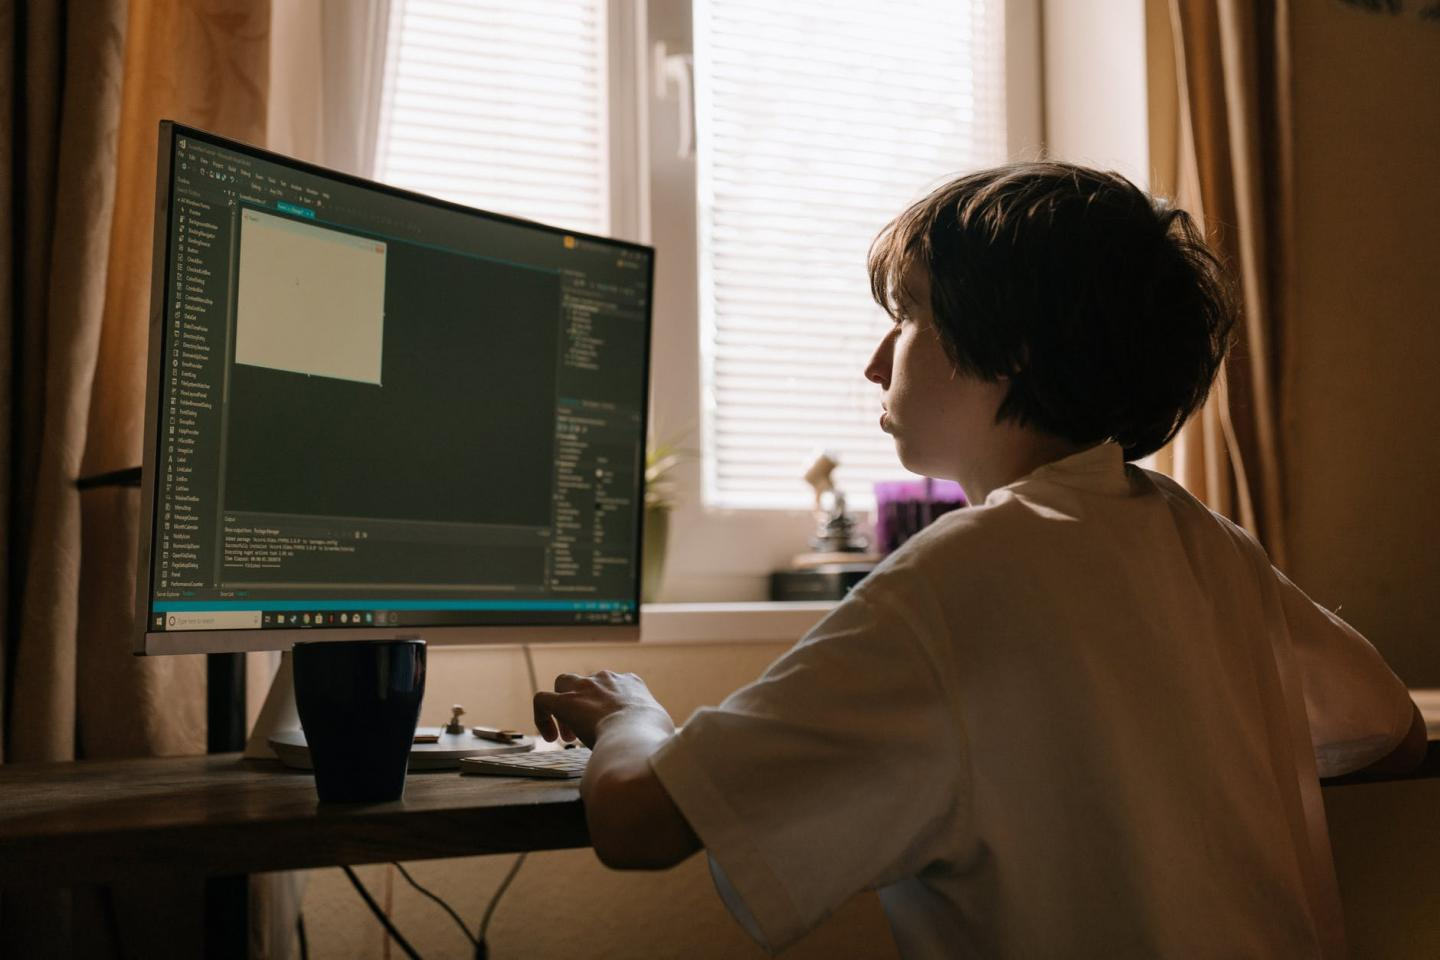 Schoolboy working on a computer